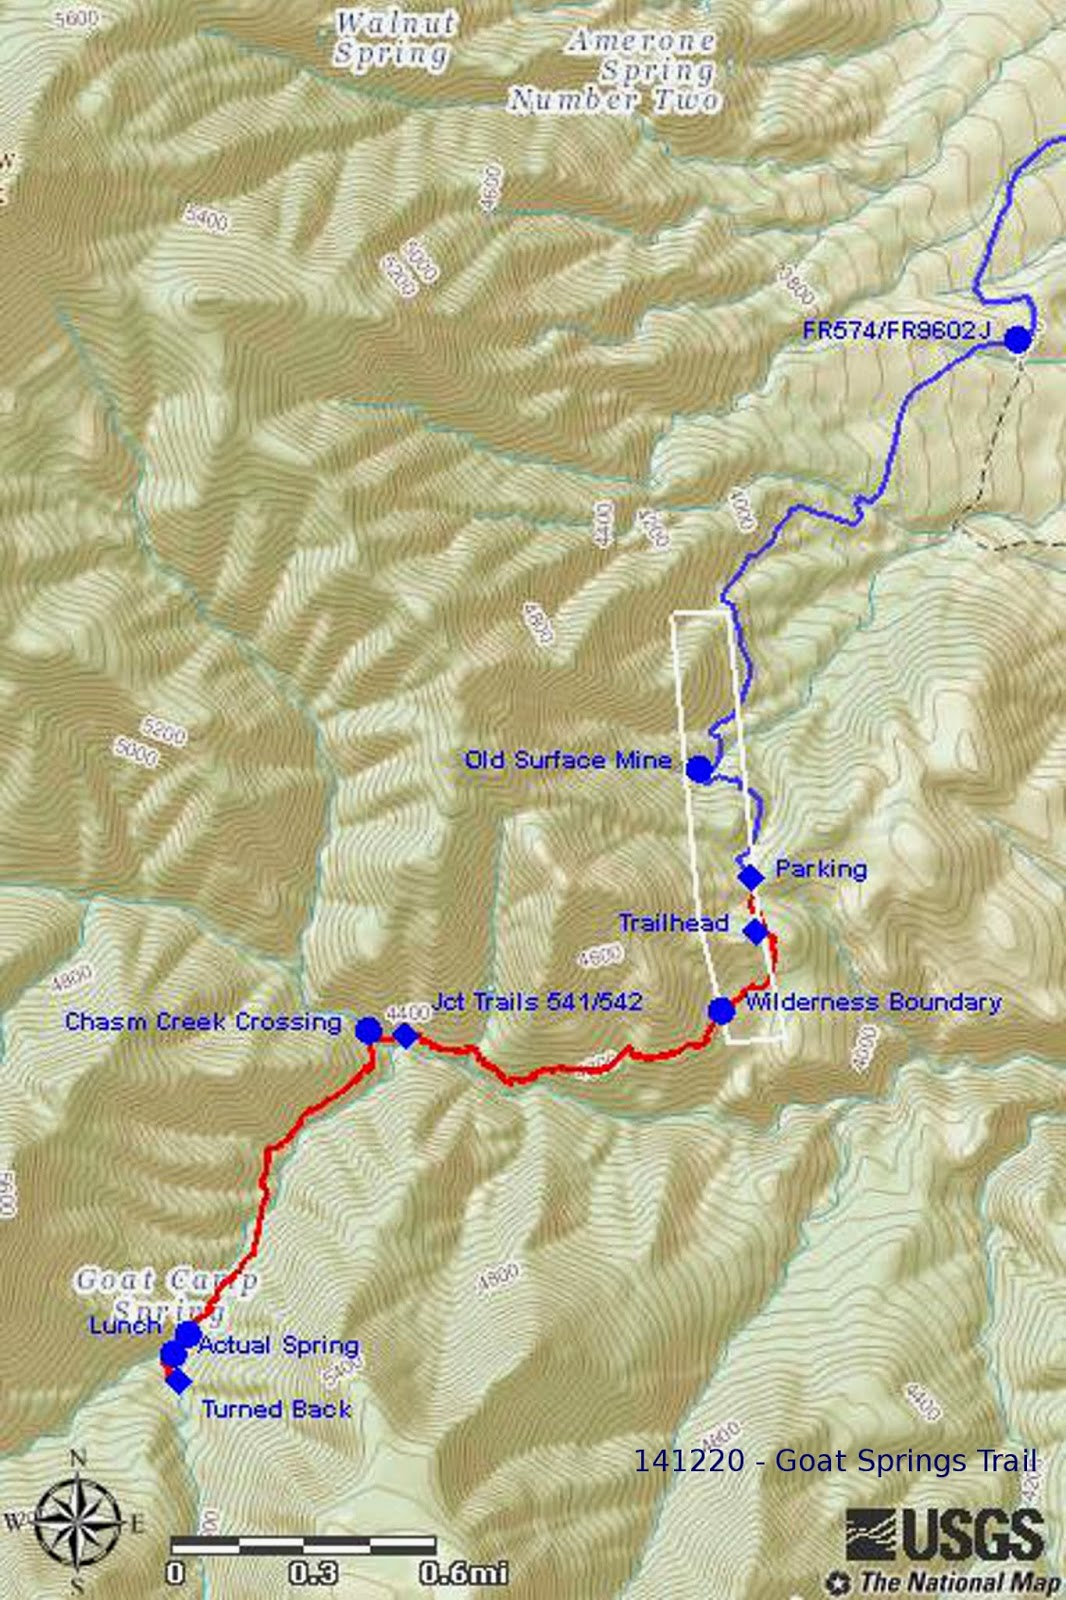 our gps track is shown in red on the included map next page the light rectangular shape outlines private private traversed by both fr 9602j and by goat